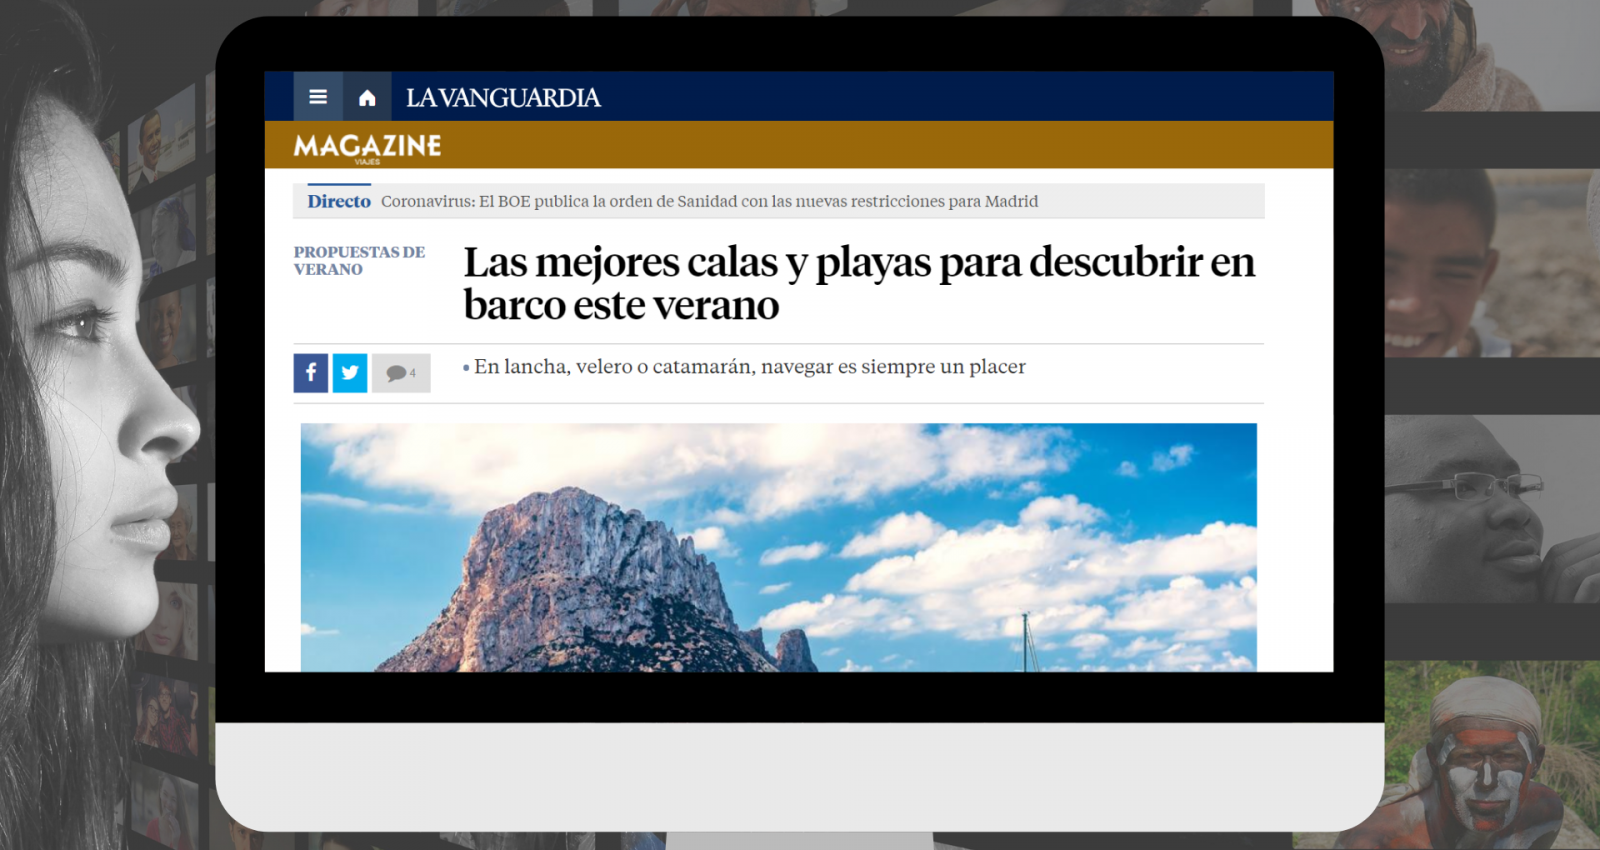 noticia la vanguardia click and boat